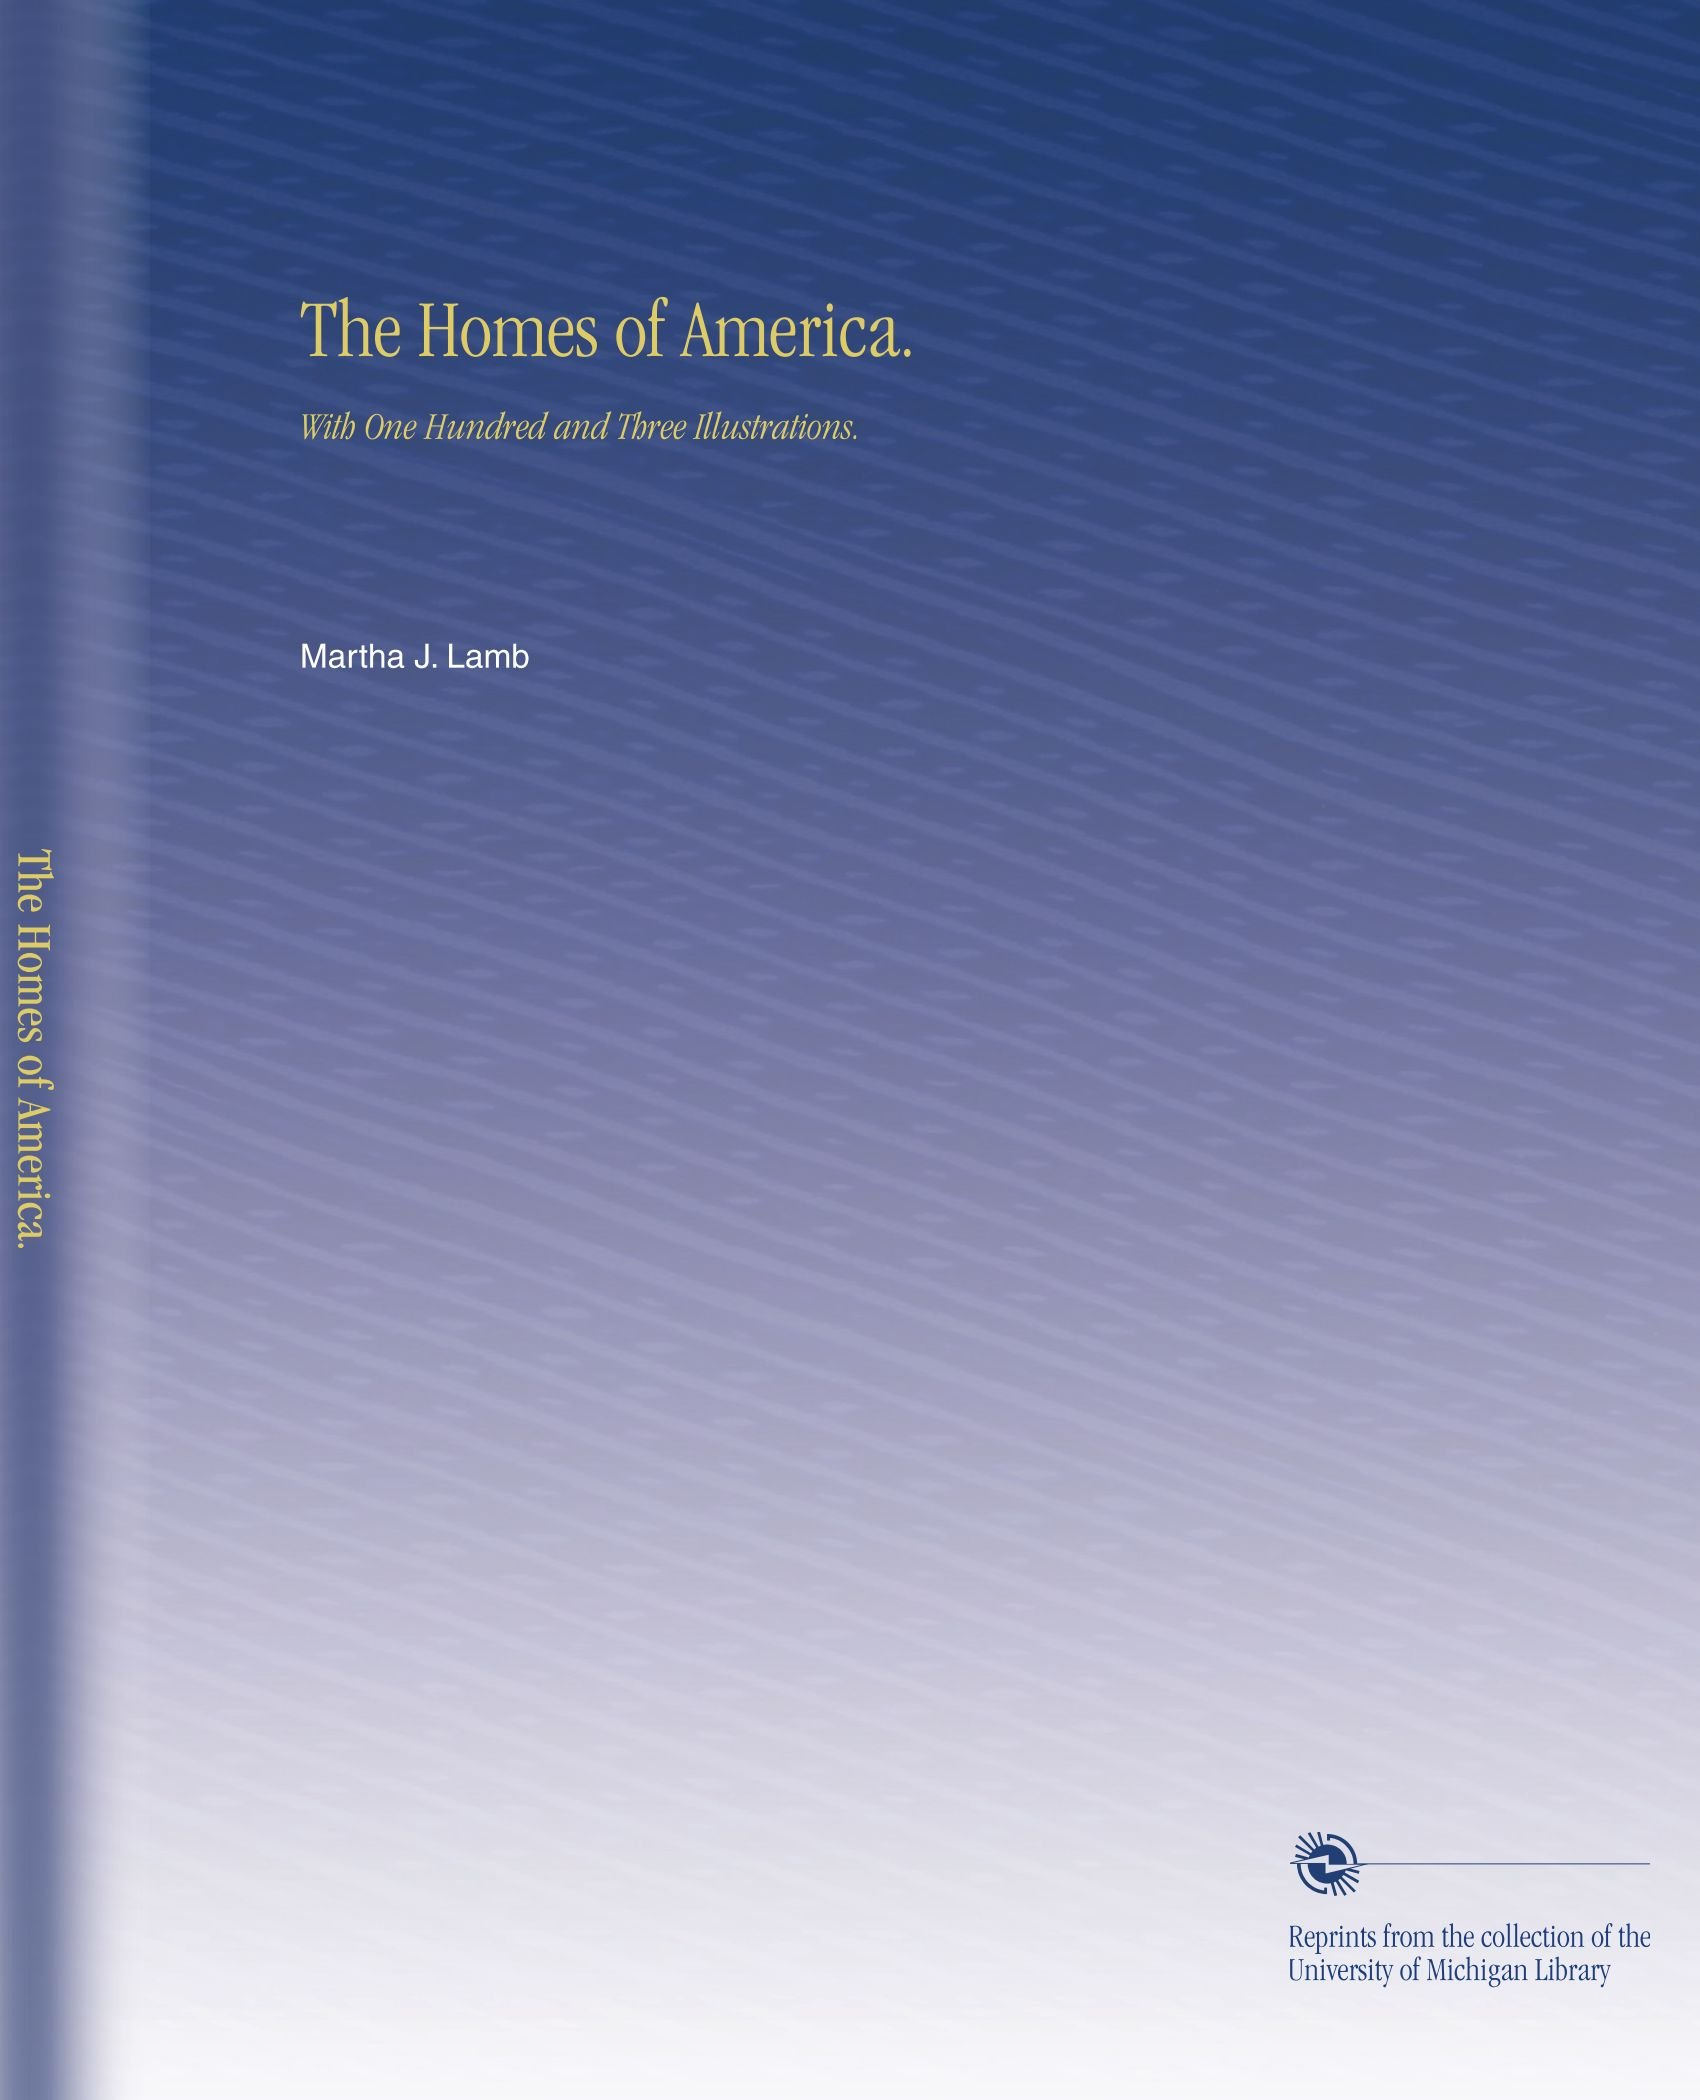 The Homes of America.: With One Hundred and Three Illustrations.